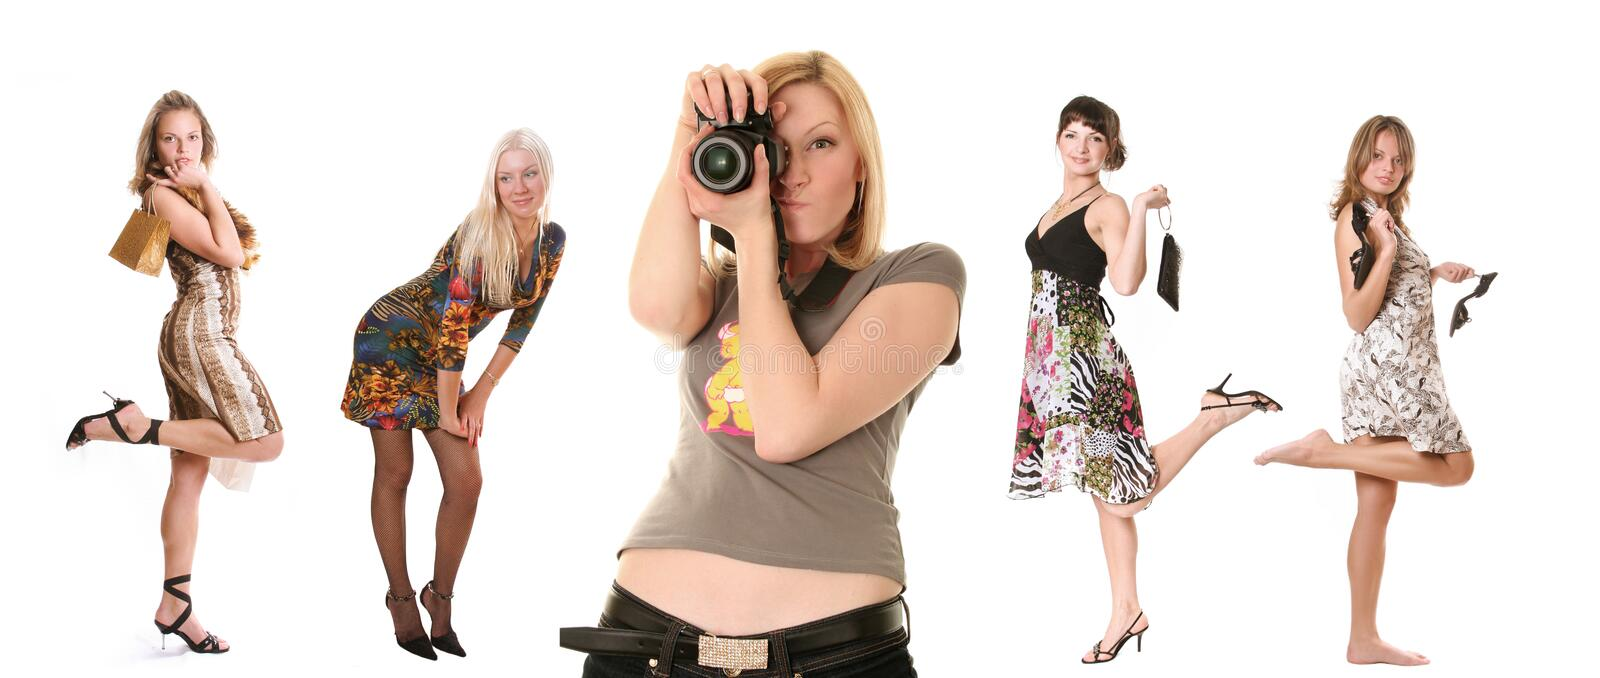 Photographer and models. Group of beautiful young women and photographer stock image